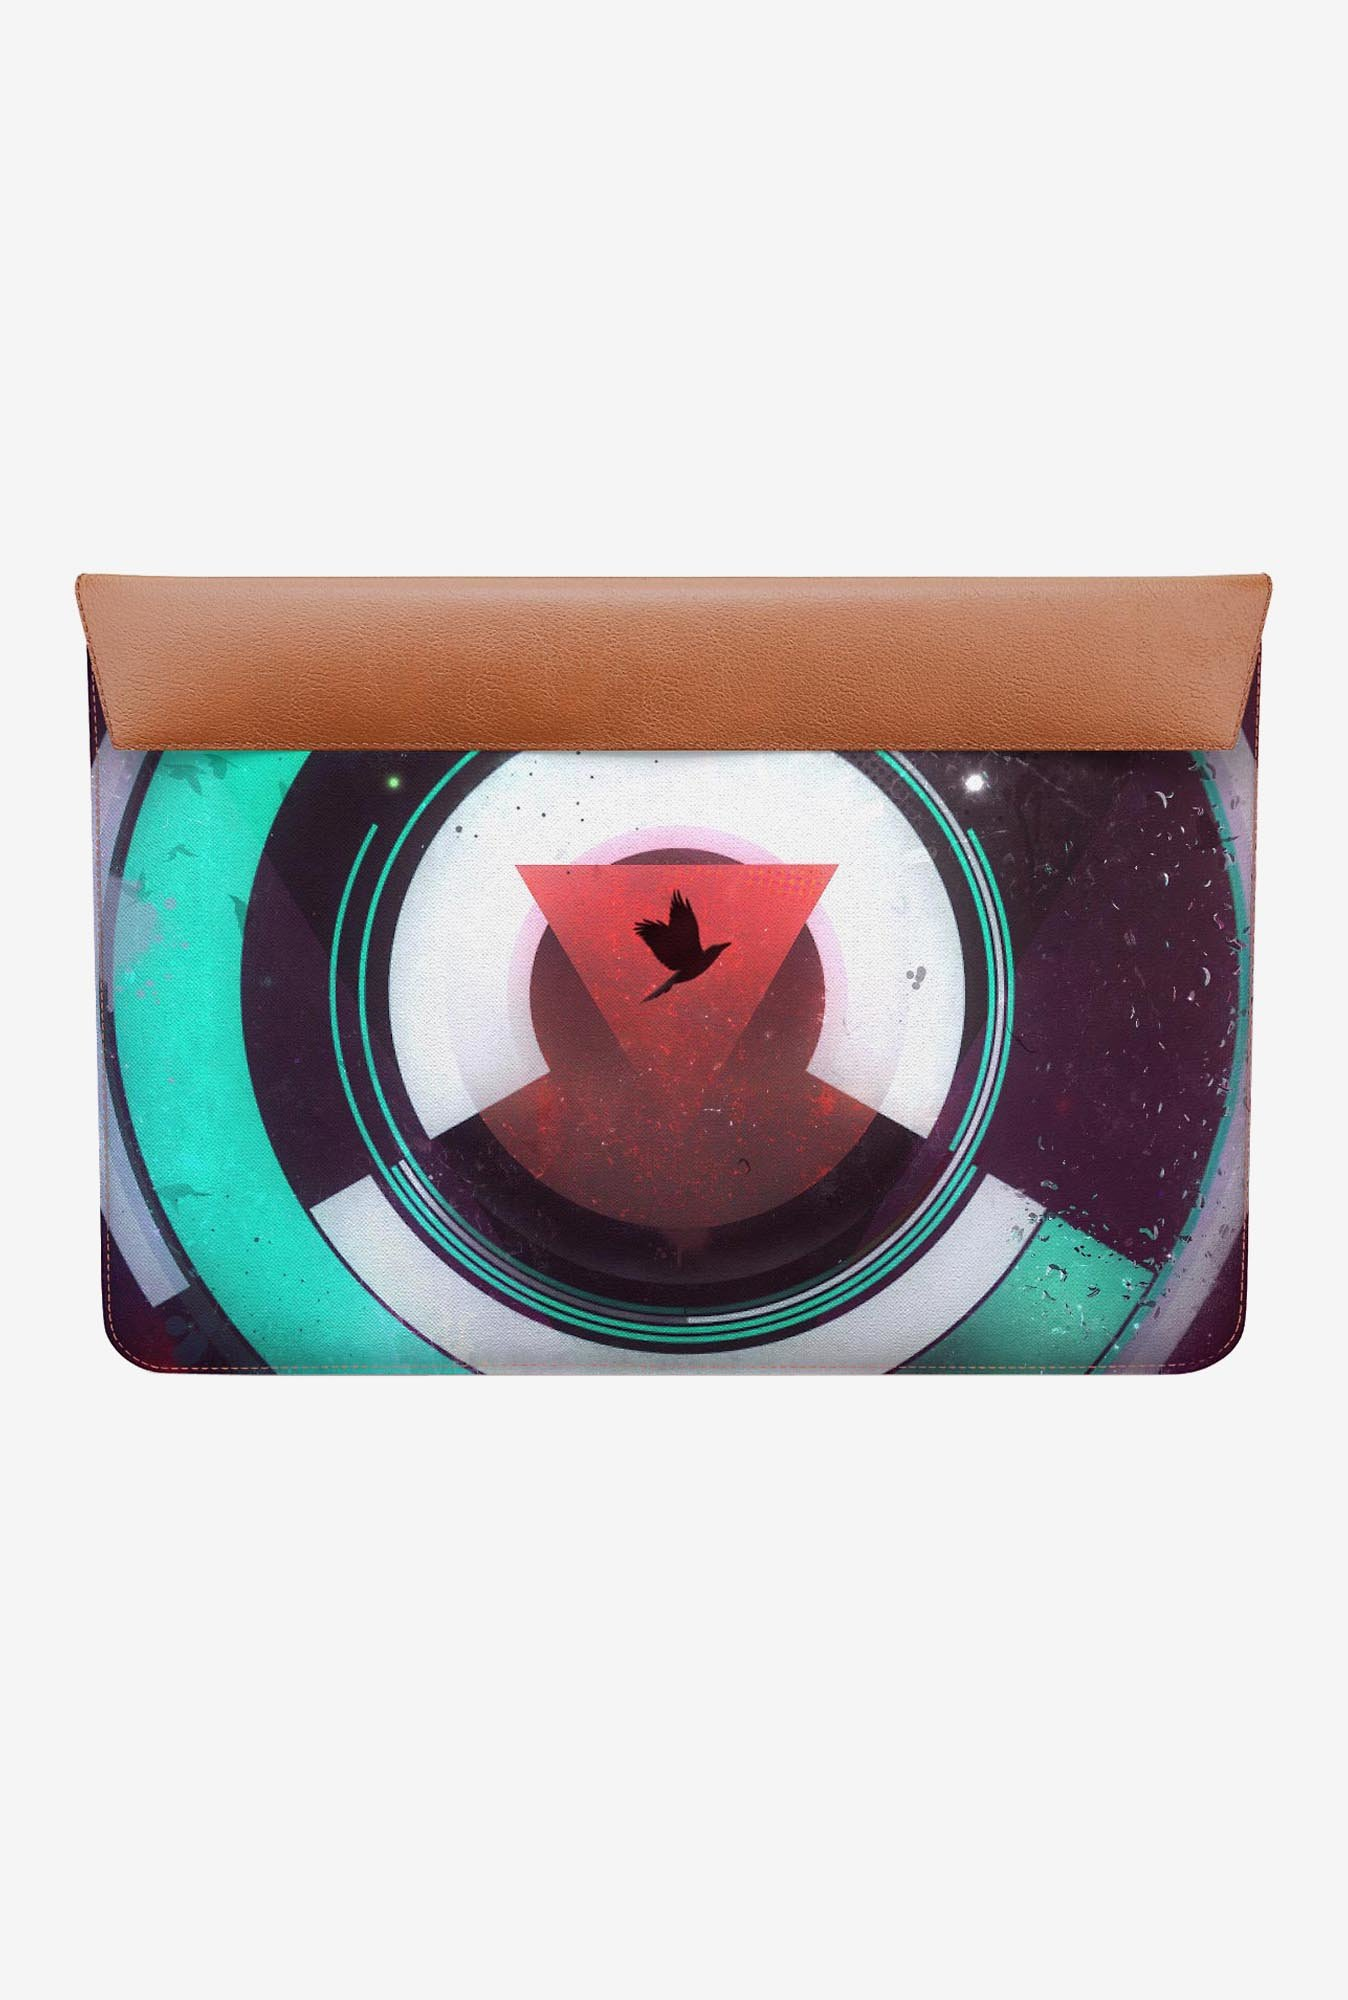 "DailyObjects Rycyrd 8 Macbook Air 11"" Envelope Sleeve"